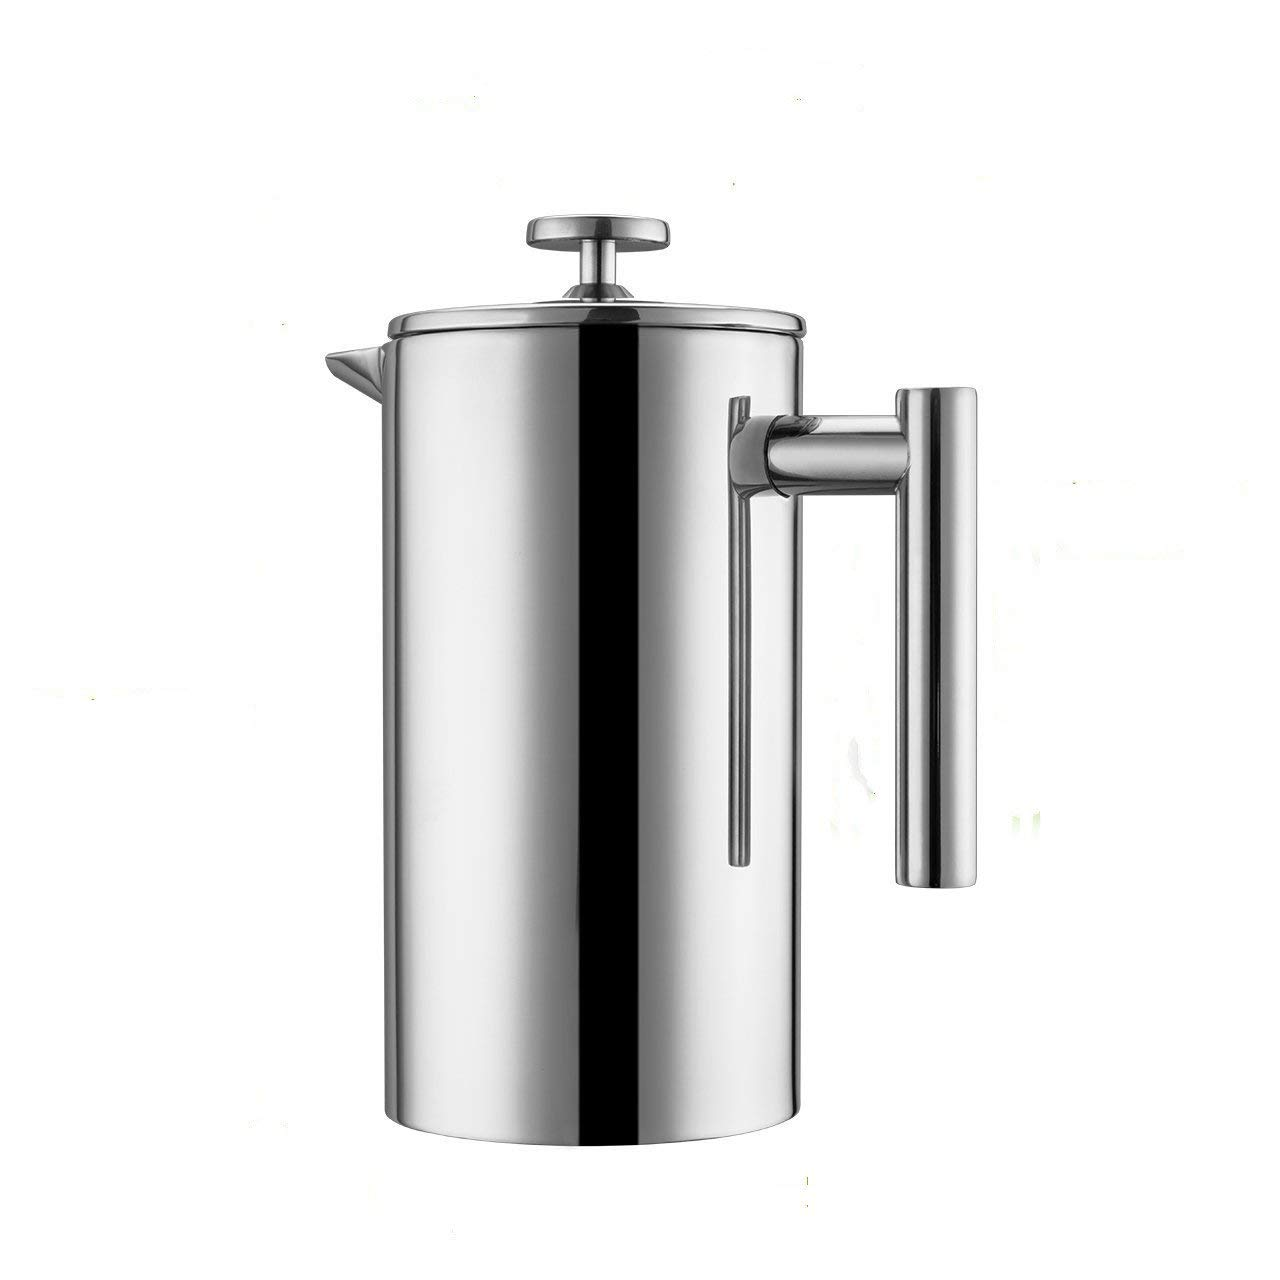 French Press, 1.5L Coffee Maker Double Wall Stainless Steel 50 OZ Coffee Press Cafetiere, Extra 2 Filters Included